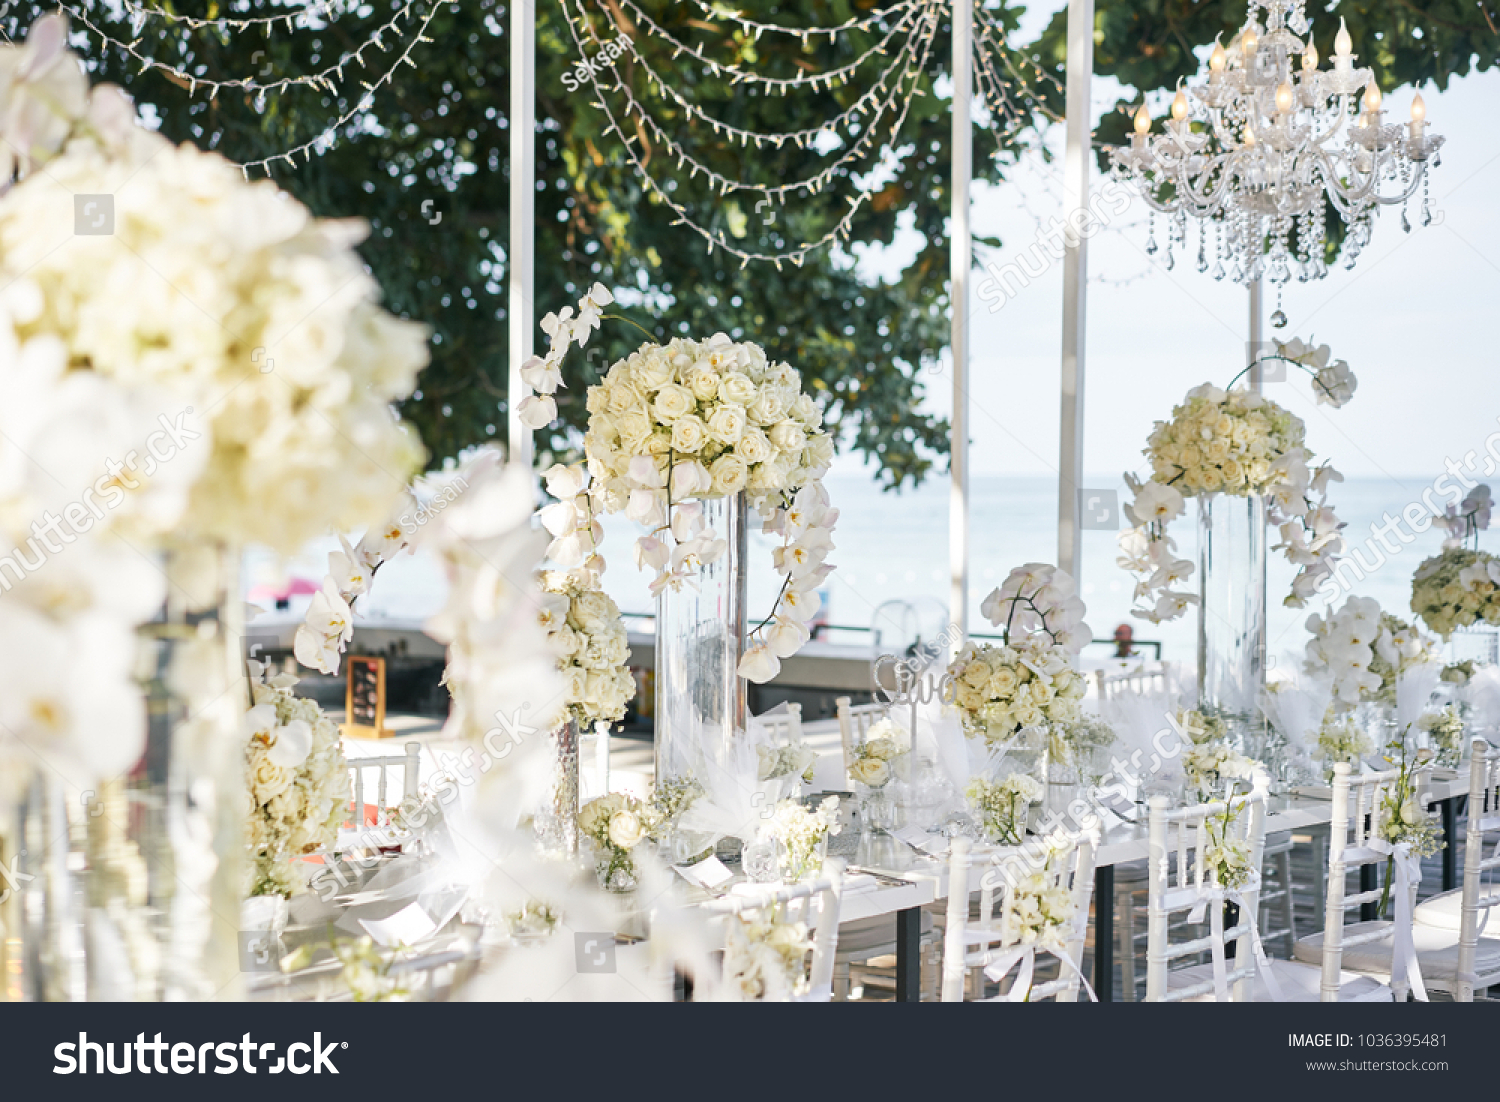 Wedding Venue Reception Dinner Table Decorated Stock Photo (Safe to ...